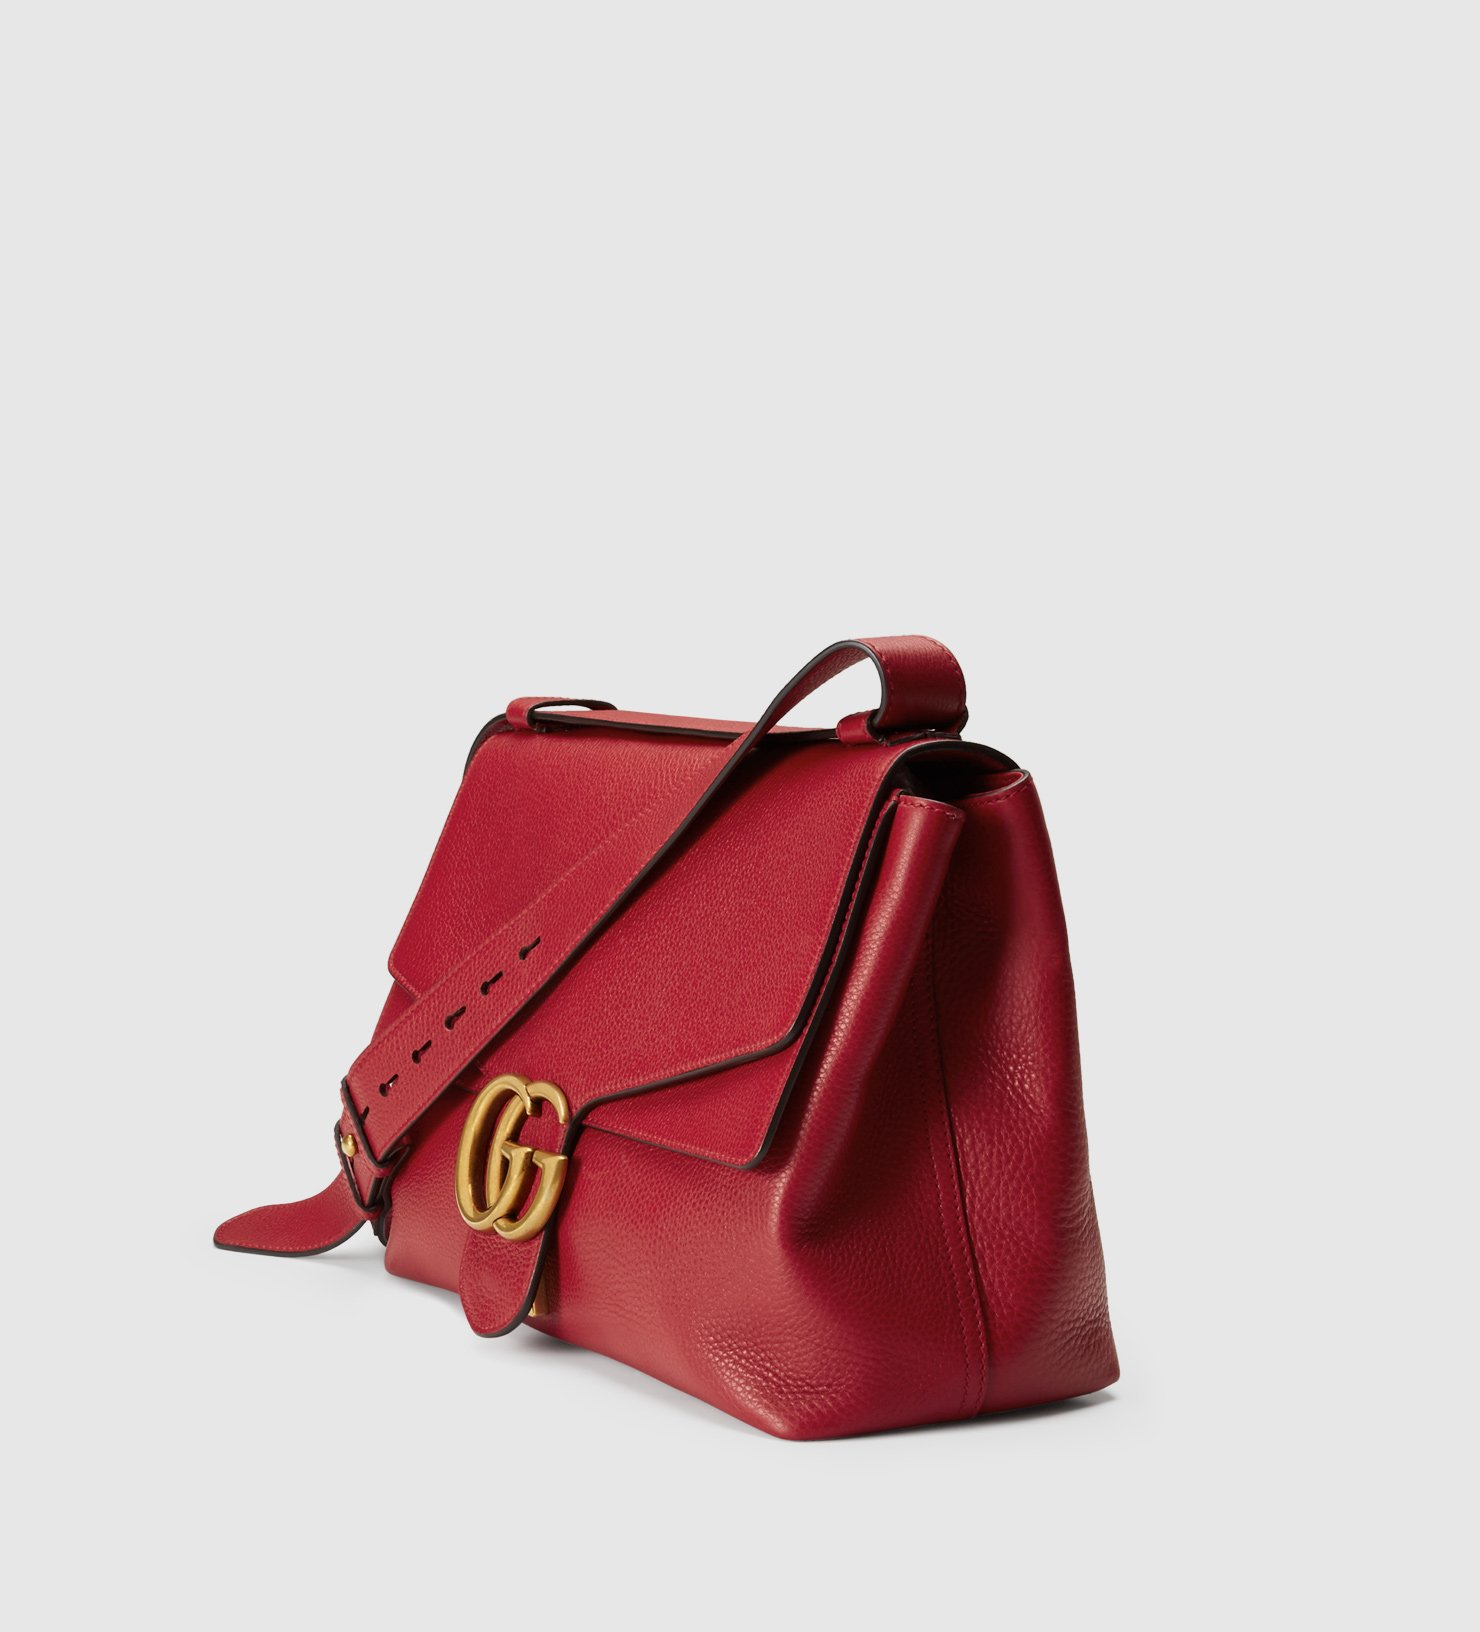 0dc253bad Gucci Gg Marmont Leather Shoulder Bag in Red - Lyst